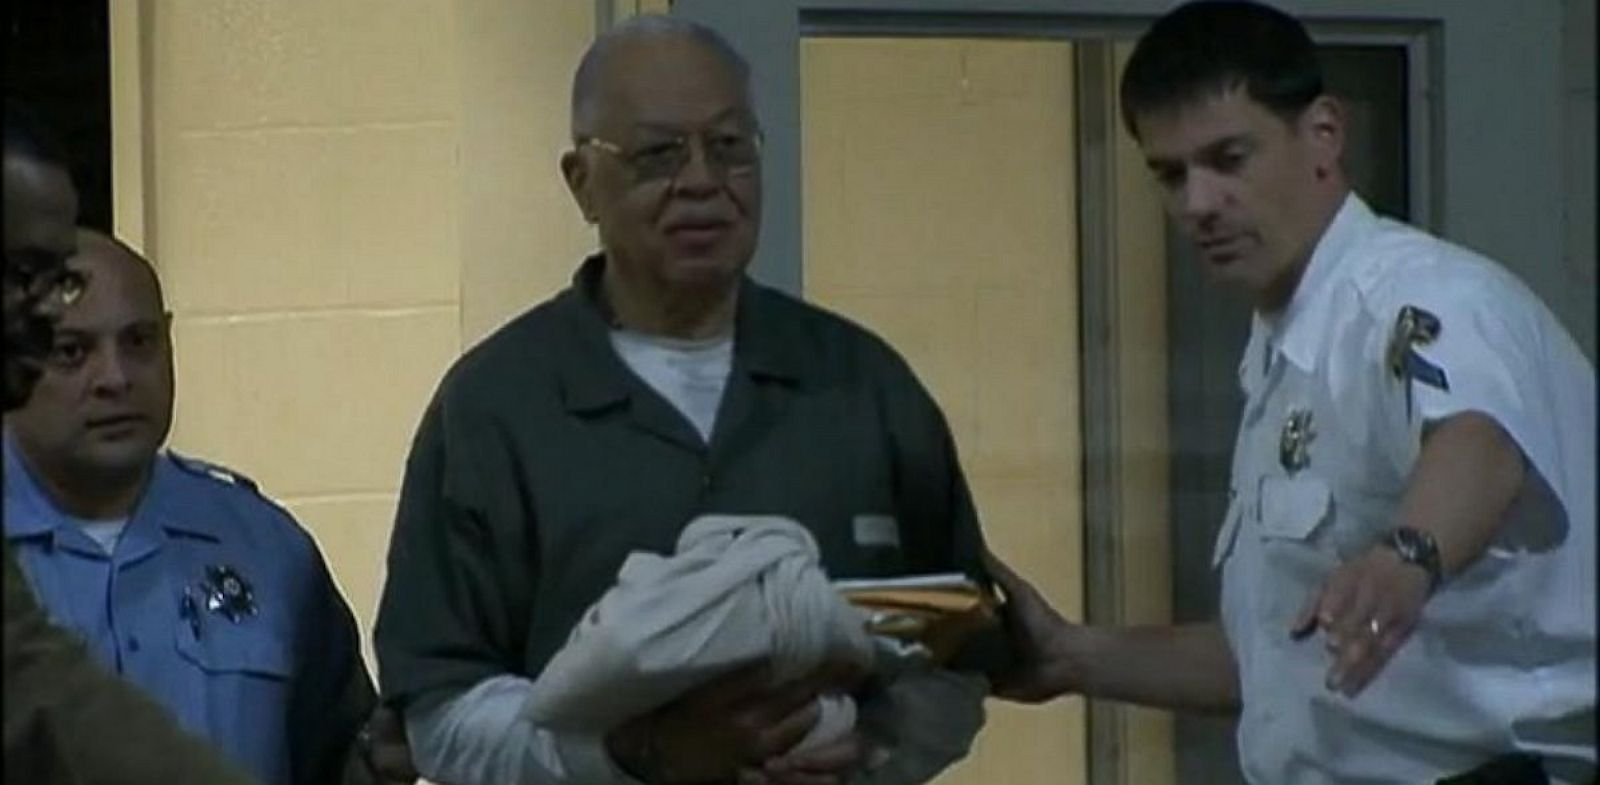 PHOTO: Dr. Kermit Gosnell is escorted into a van after his guilty verdict was read to him on May 13, 2013, in Philadelphia.